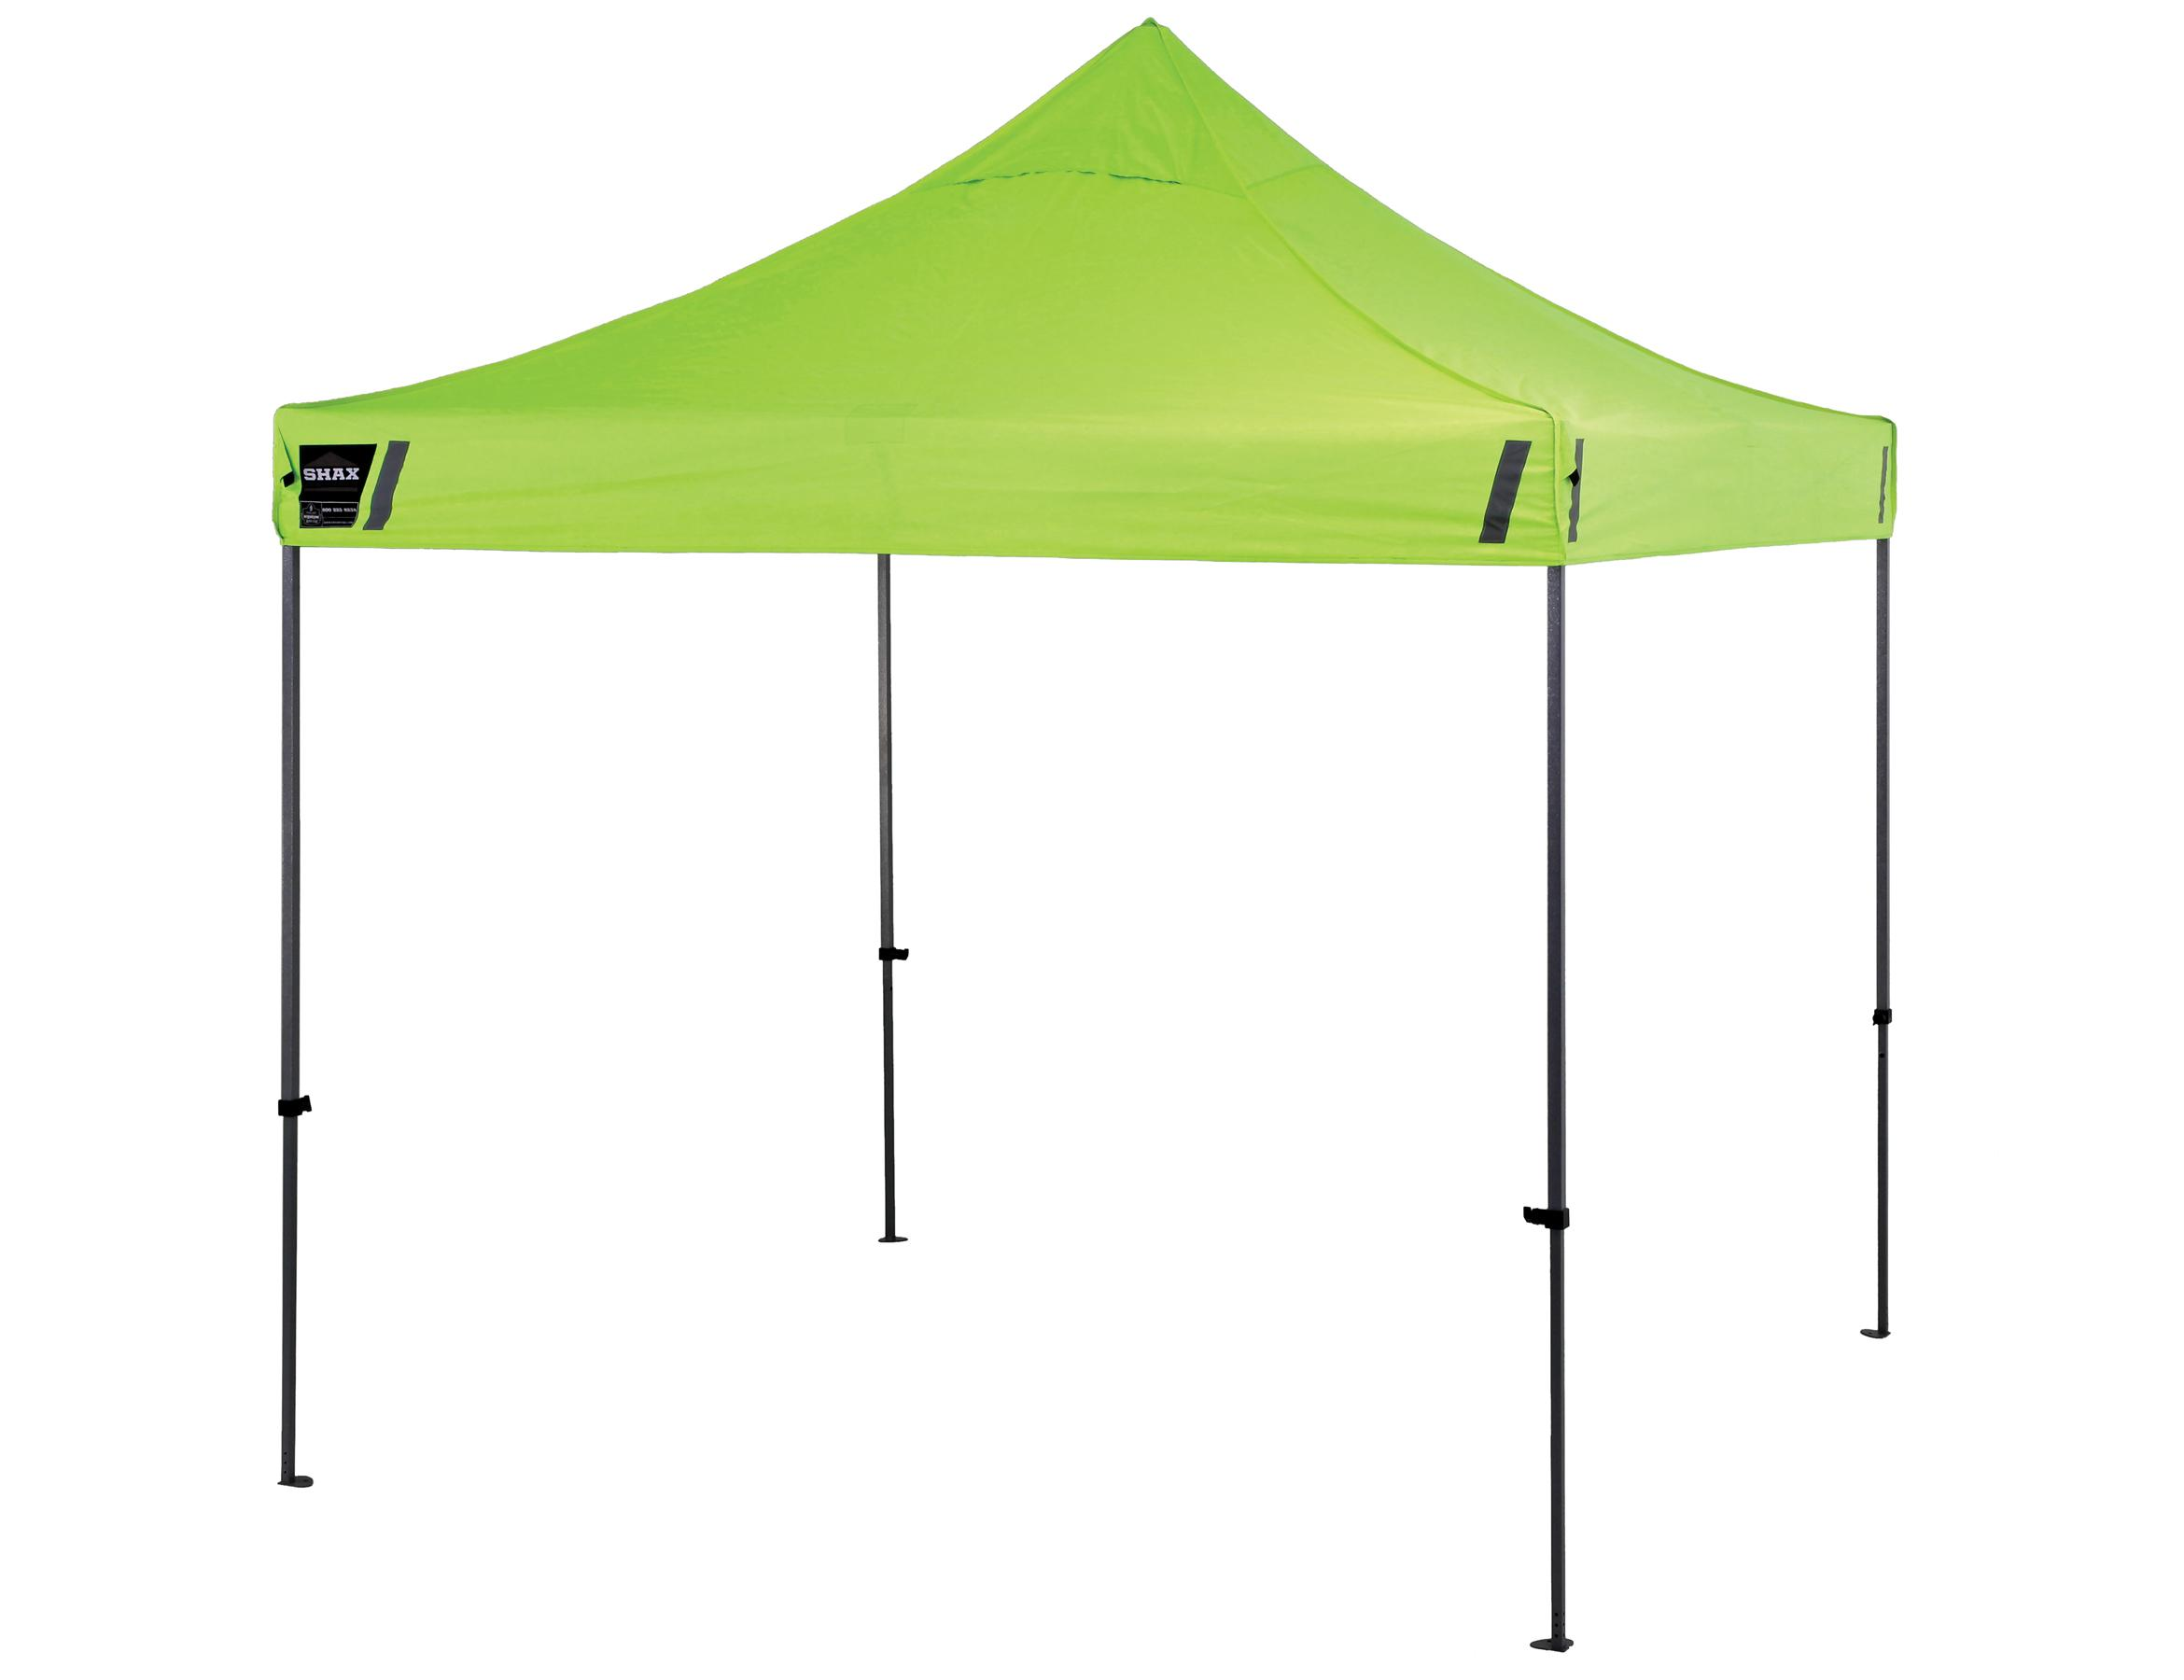 ergodyne shax 6000 heavy duty commercial pop up tent lime home improvement. Black Bedroom Furniture Sets. Home Design Ideas